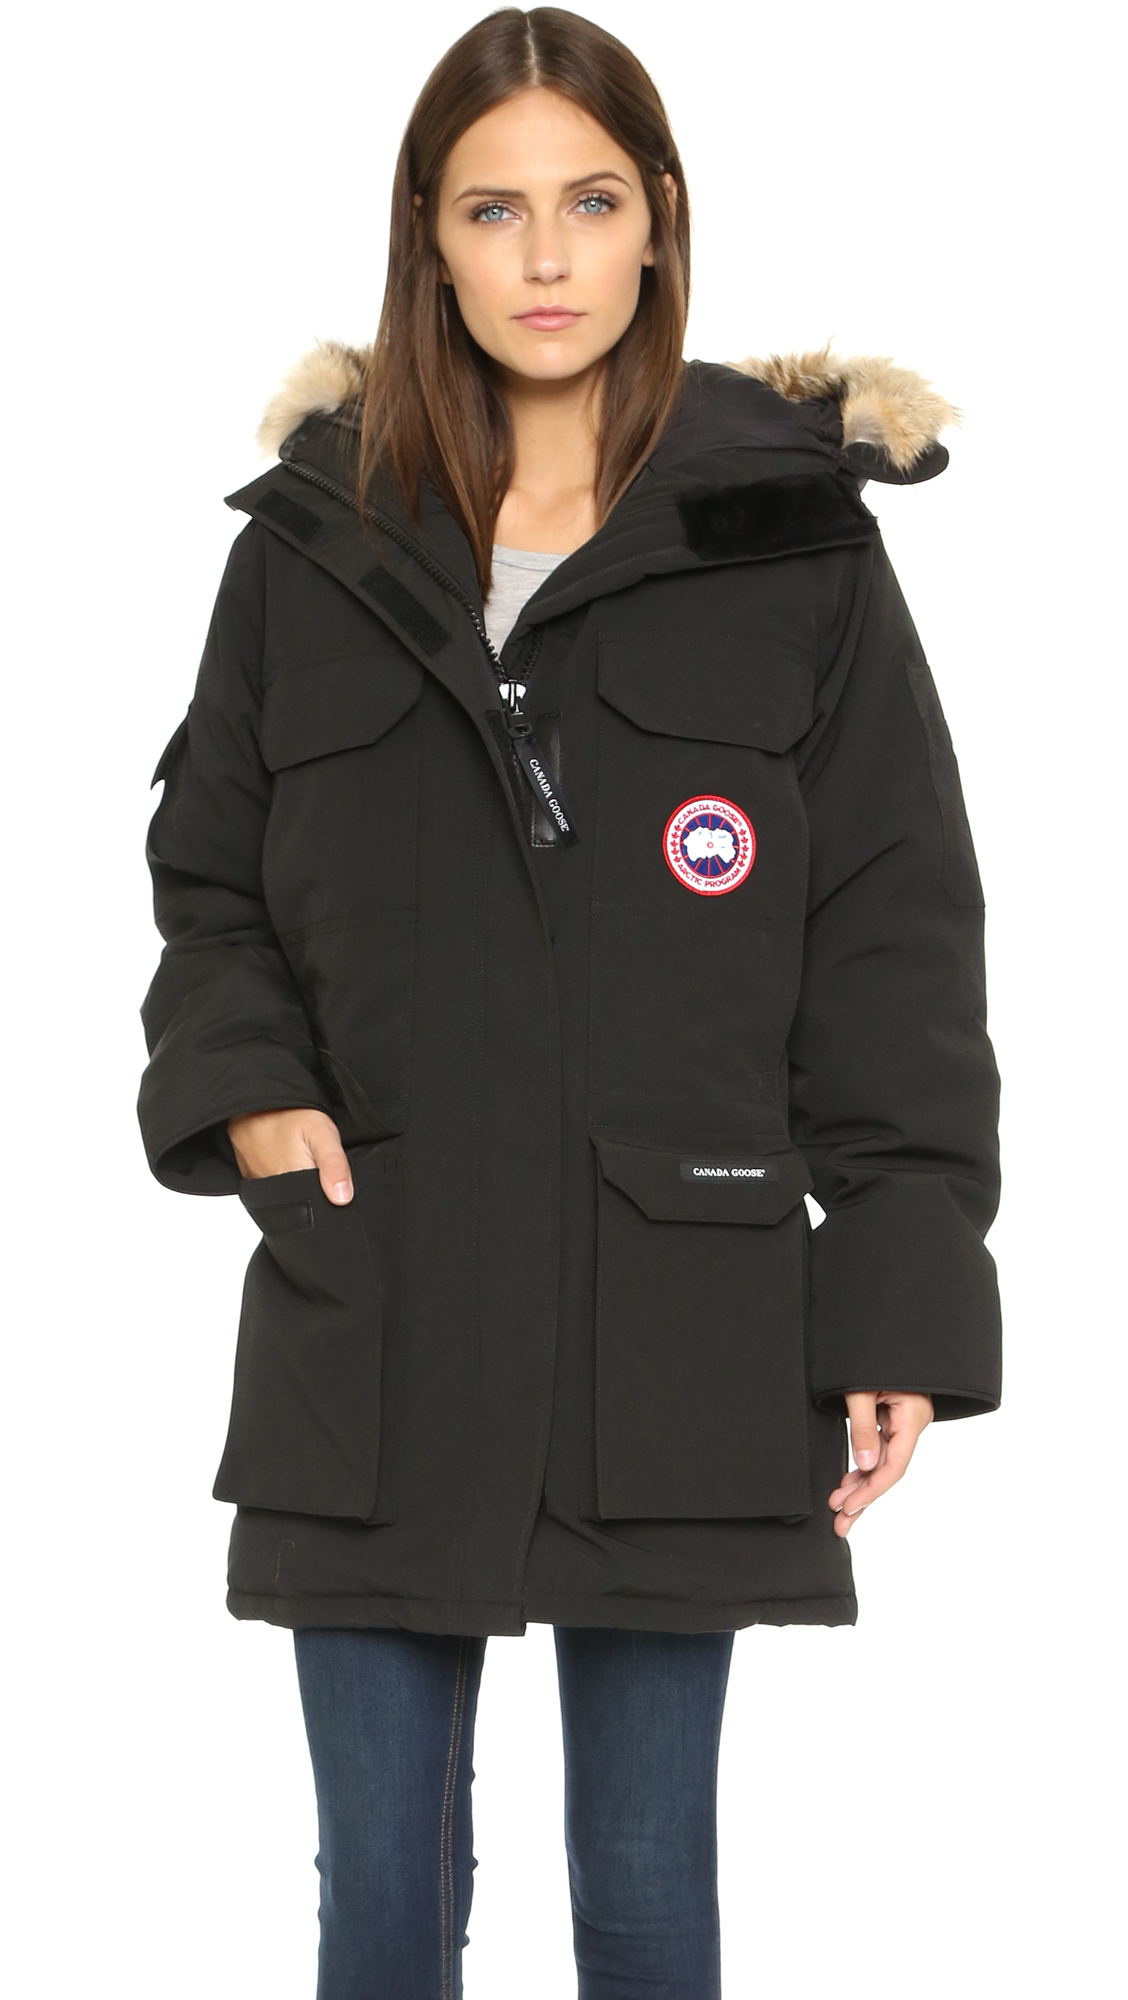 9 Canada Goose Alternatives To Fit Every Budget — AS ...